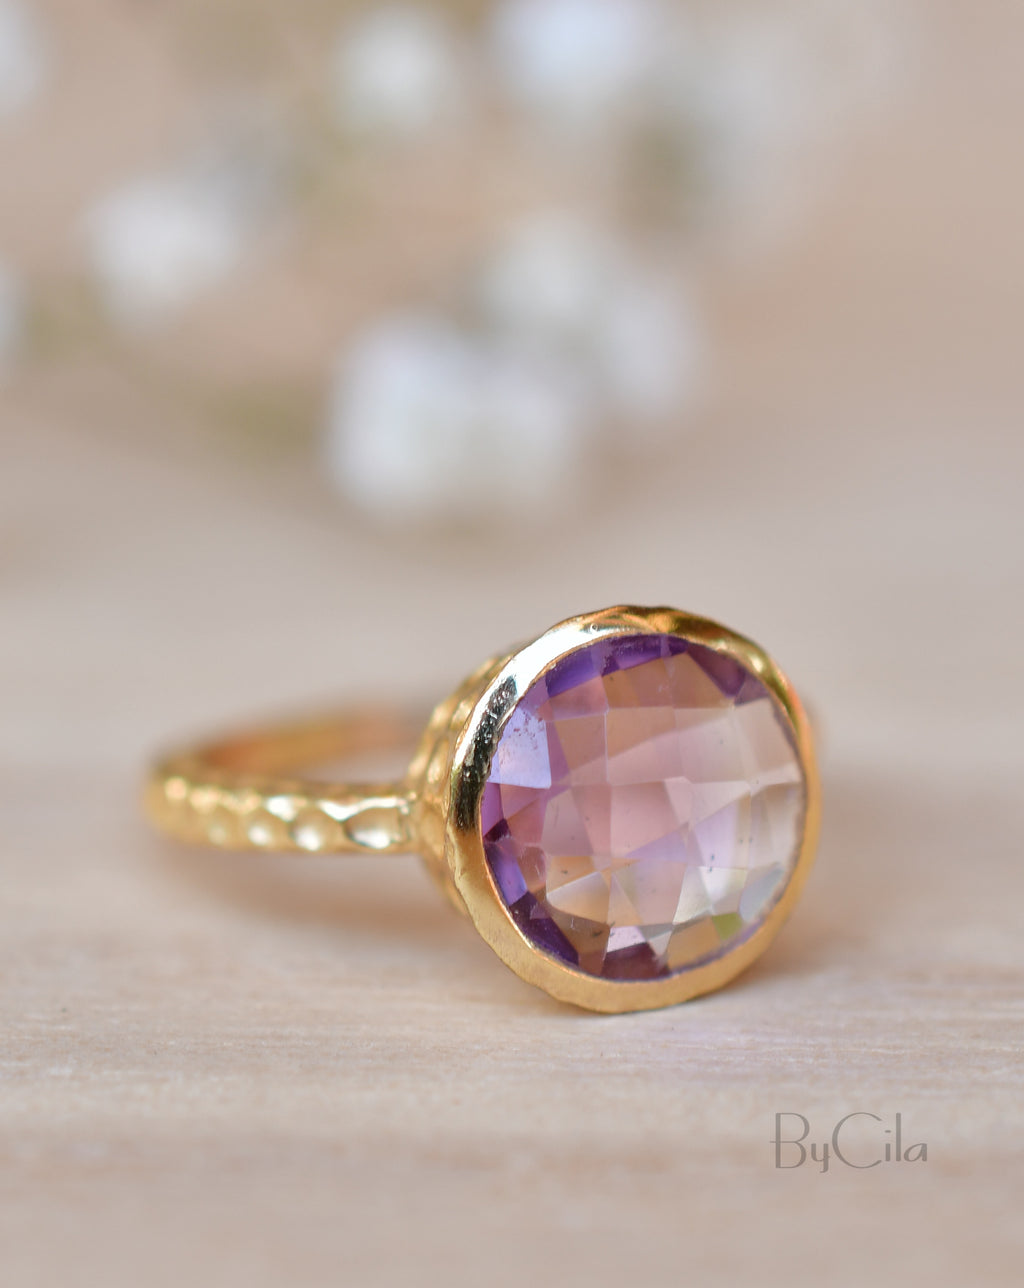 Marcela Ring * Amethyst * Gold Plated 18k * SBJR111